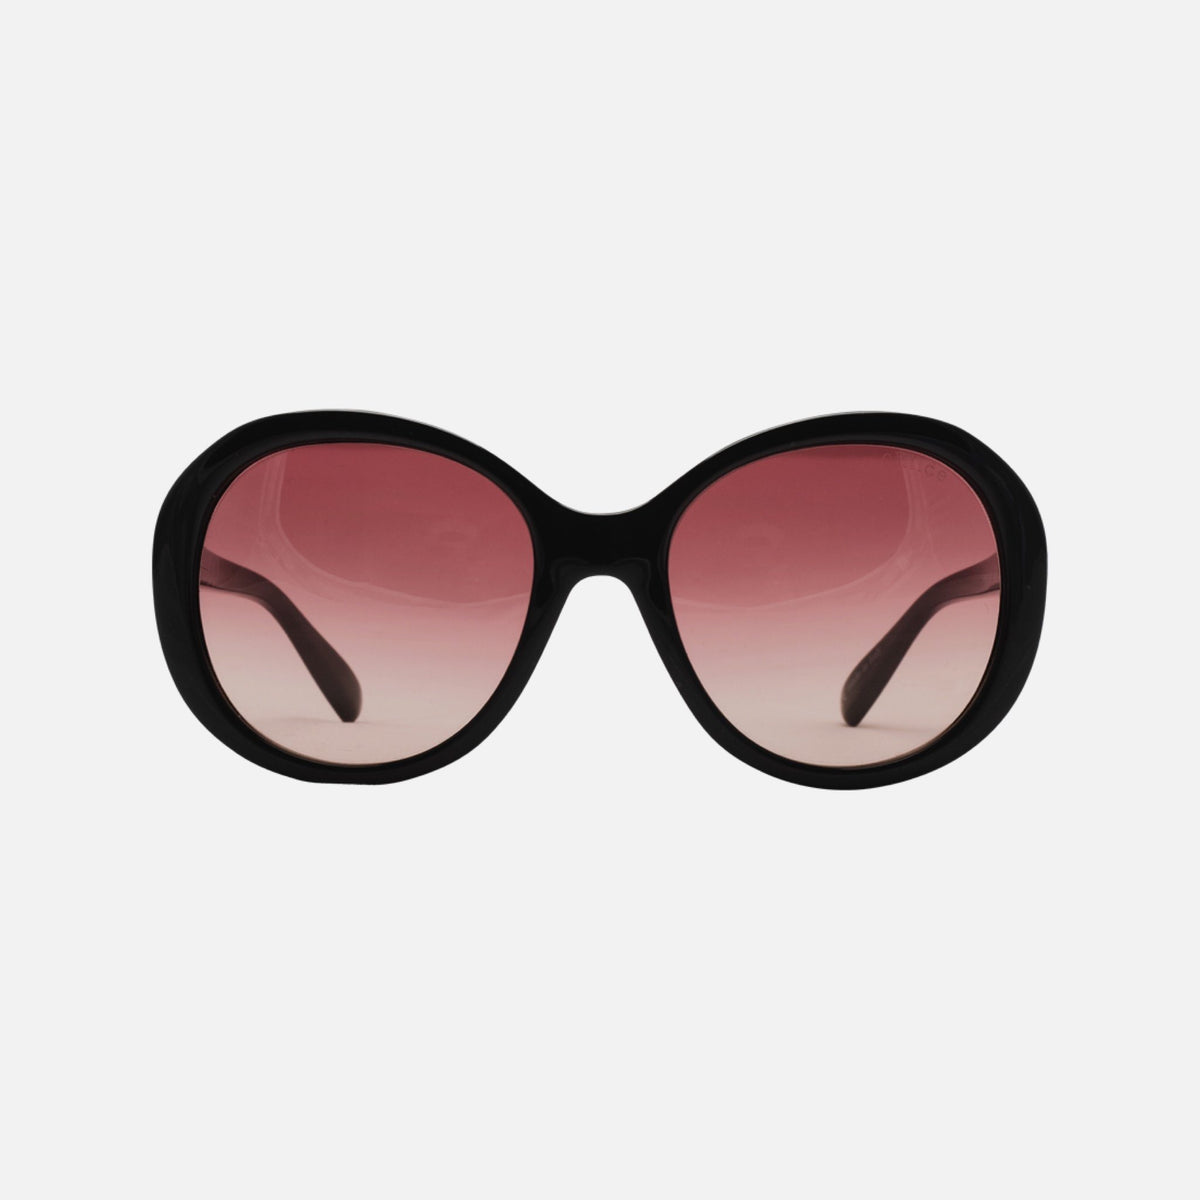 DRUMMER Gloss Black | Rose Vital Gradient Lens